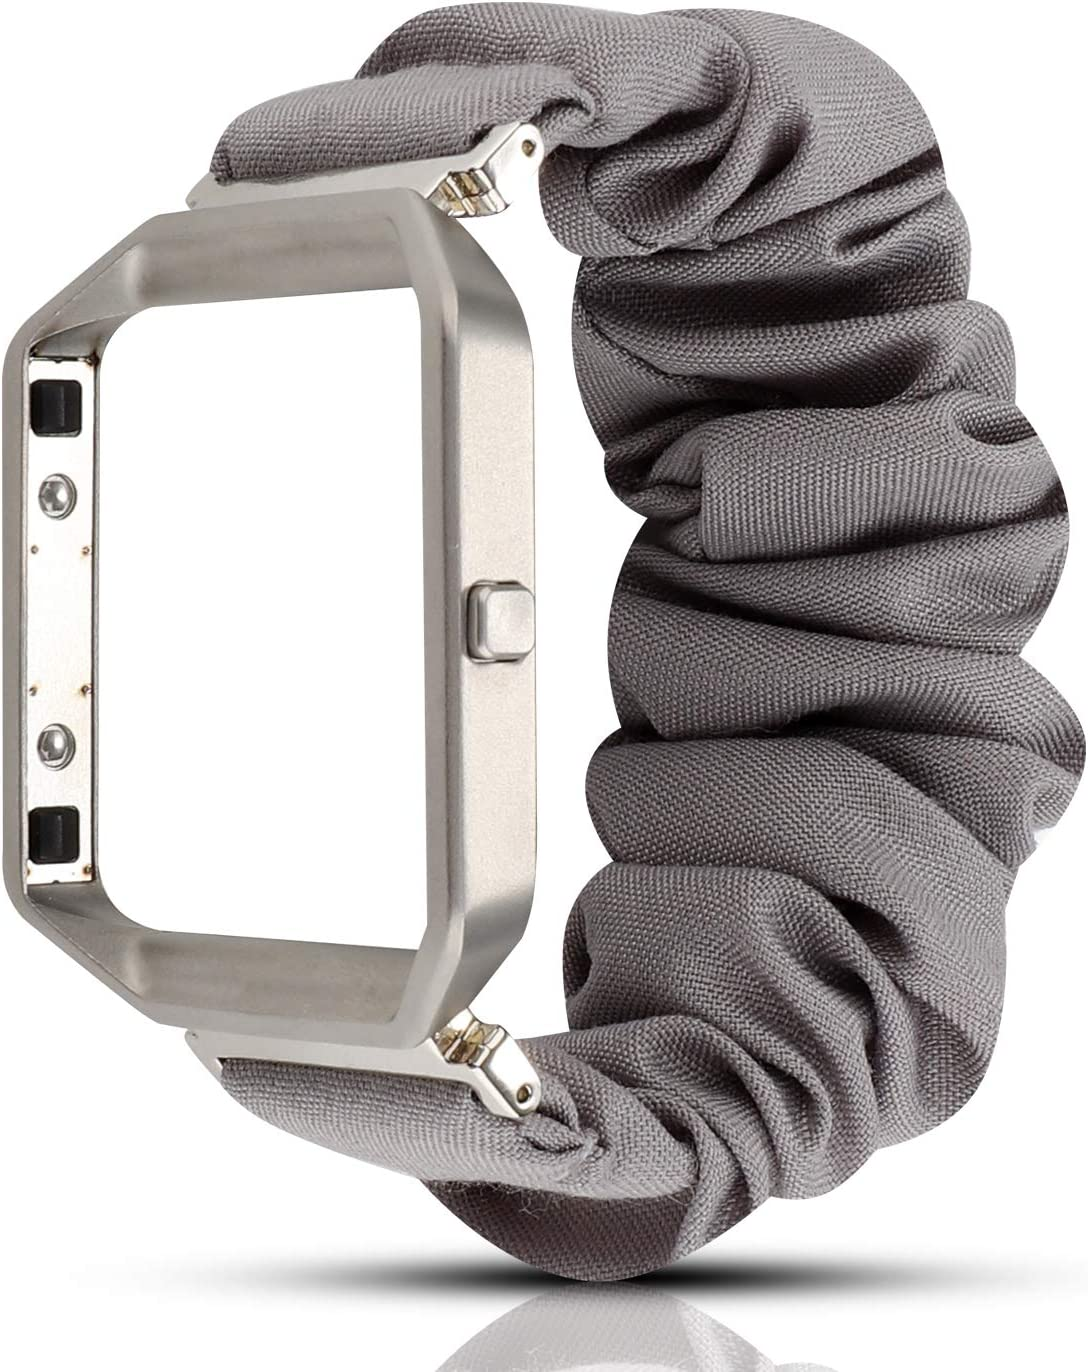 YOSWAN Scrunchie Elastic Band Compatible with Fitbit Blaze Smartwatch Fitness,Clothing Wrist Strap with Metal Frame Replacement for Blaze Men Women (Gray)